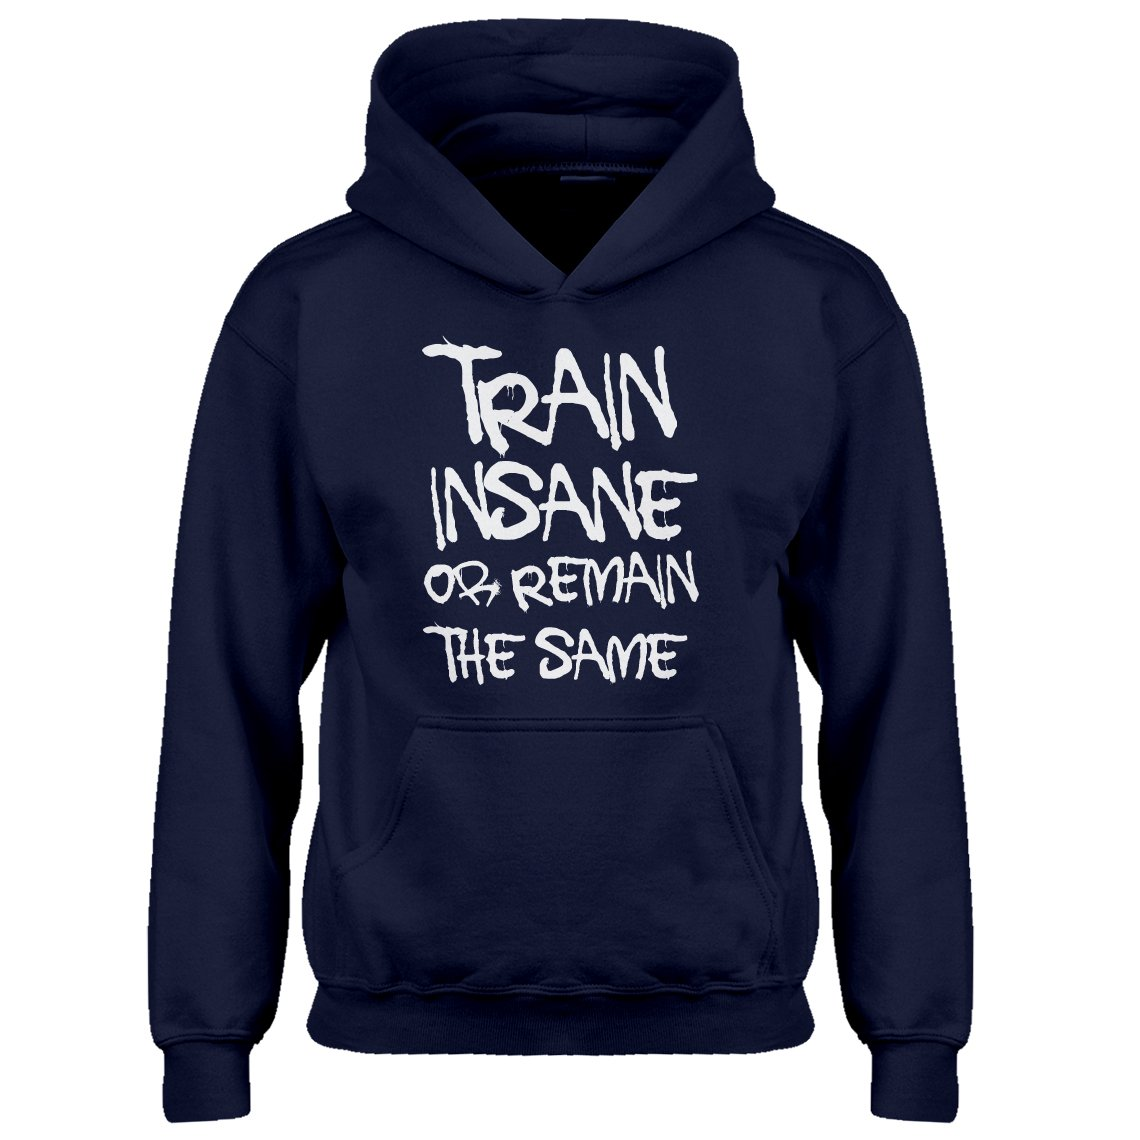 Indica Plateau Kids Hoodie Train Insane Or Remain The Same X-Large Navy Blue Hoodie